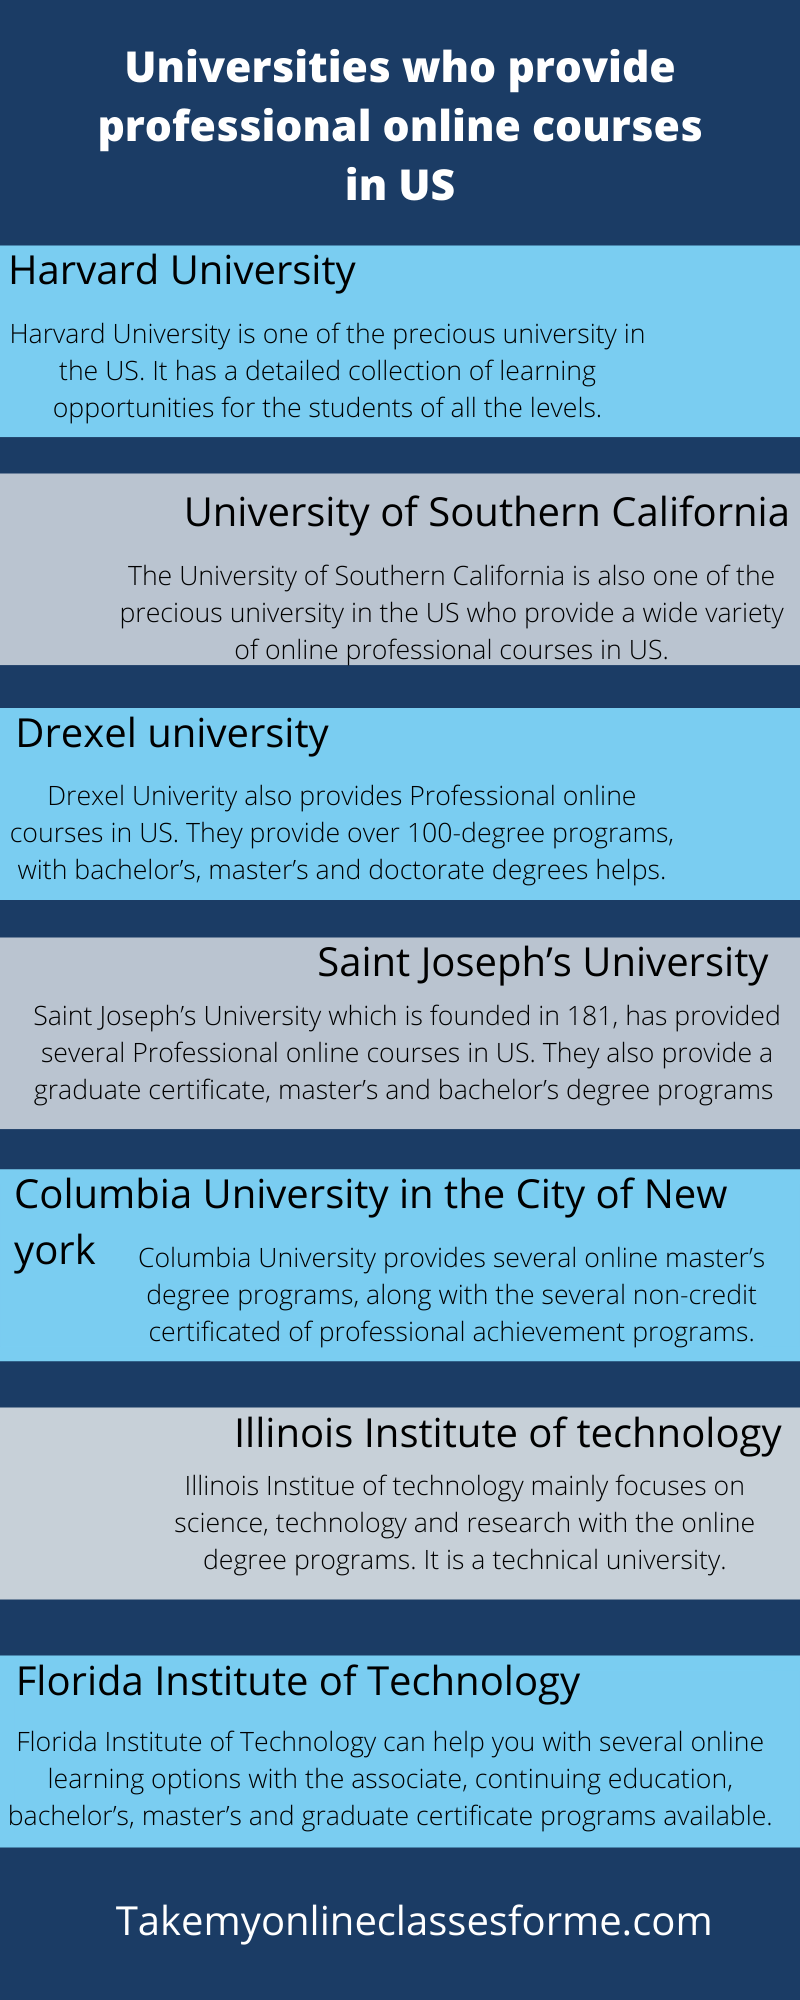 Universities-who-provide-professional-online-courses-in-US